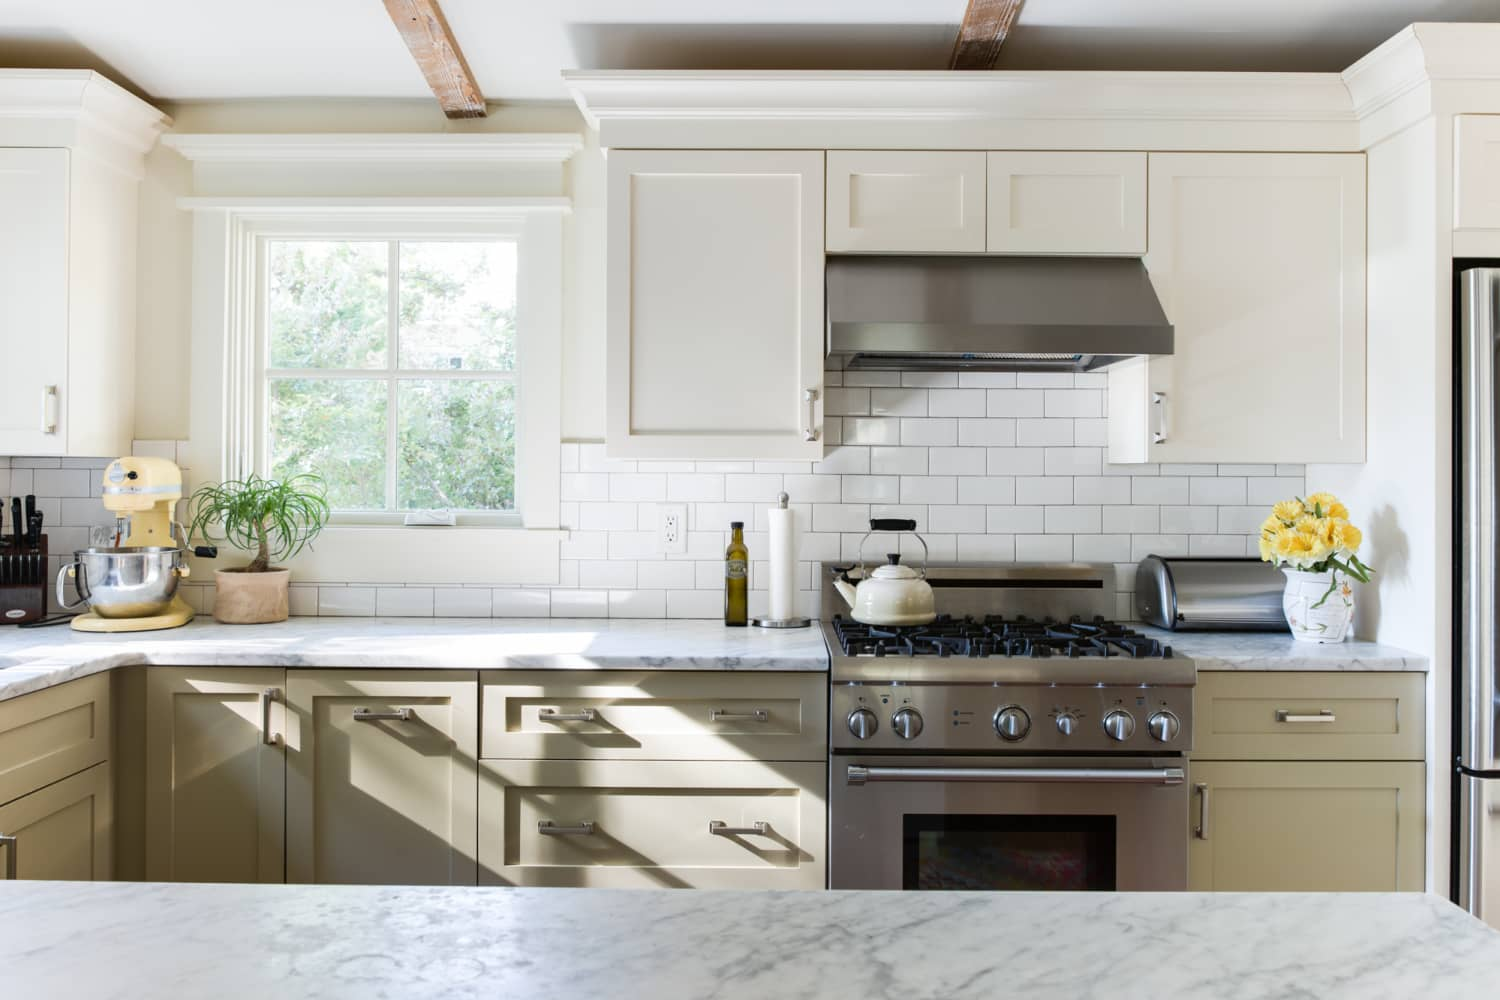 What's a Transitional Kitchen? Everything You Want to Know That You Were too Scared to Ask